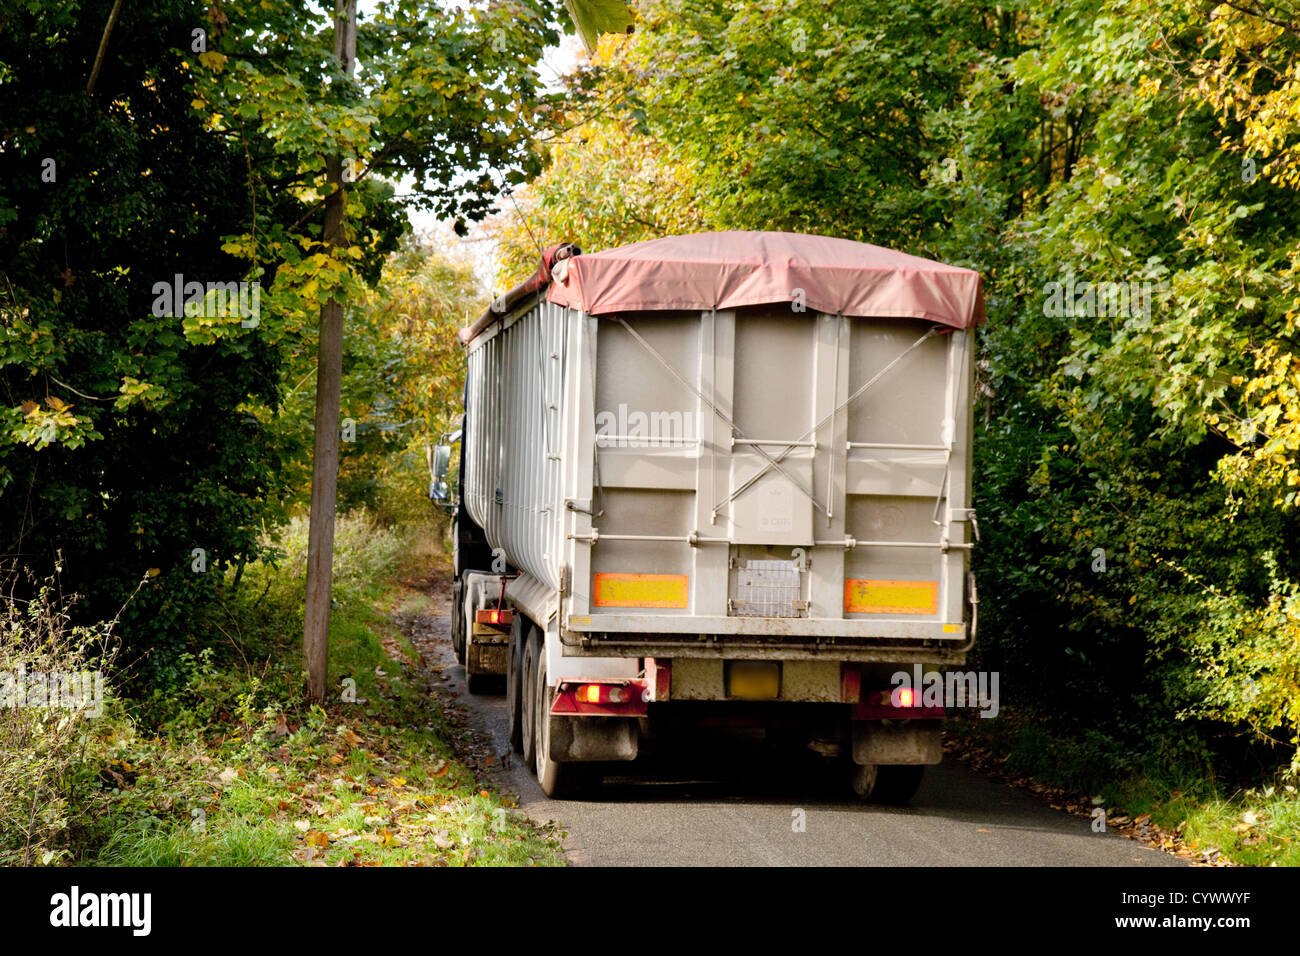 A large HGV lorry truck driving on a narrow country road, Suffolk UK - Stock Image